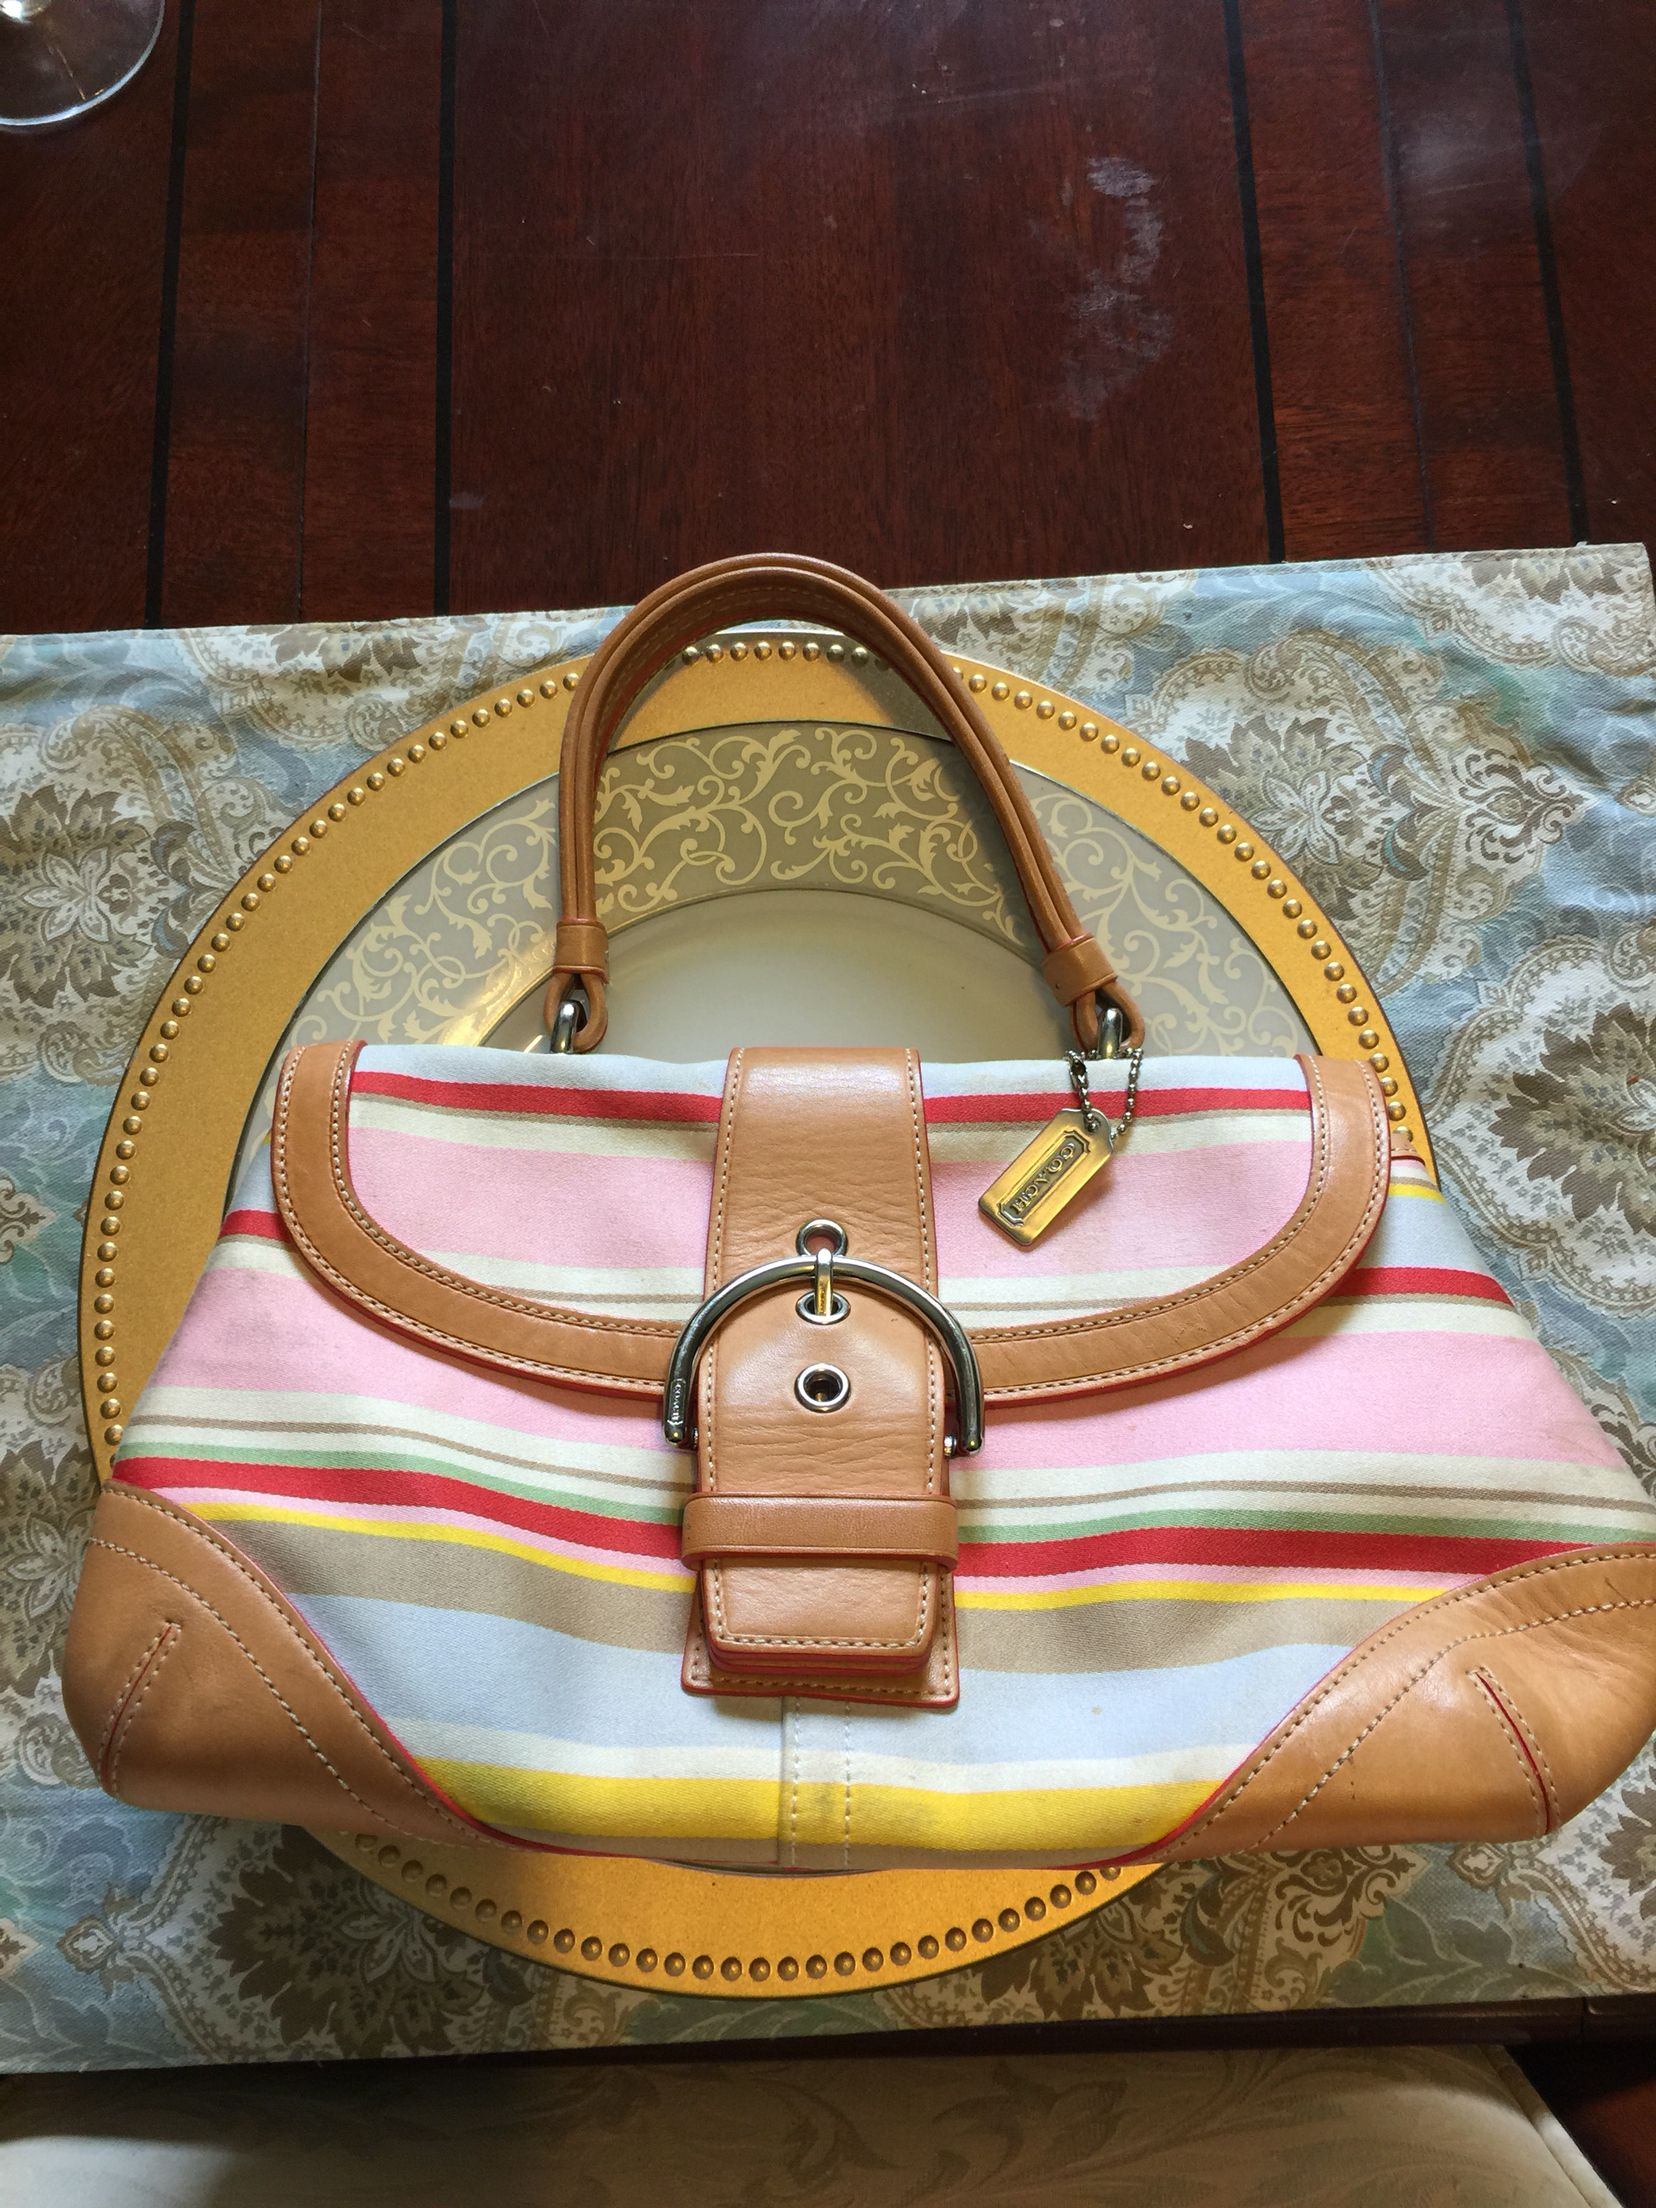 Small coach handbag - GUC. For trade only.